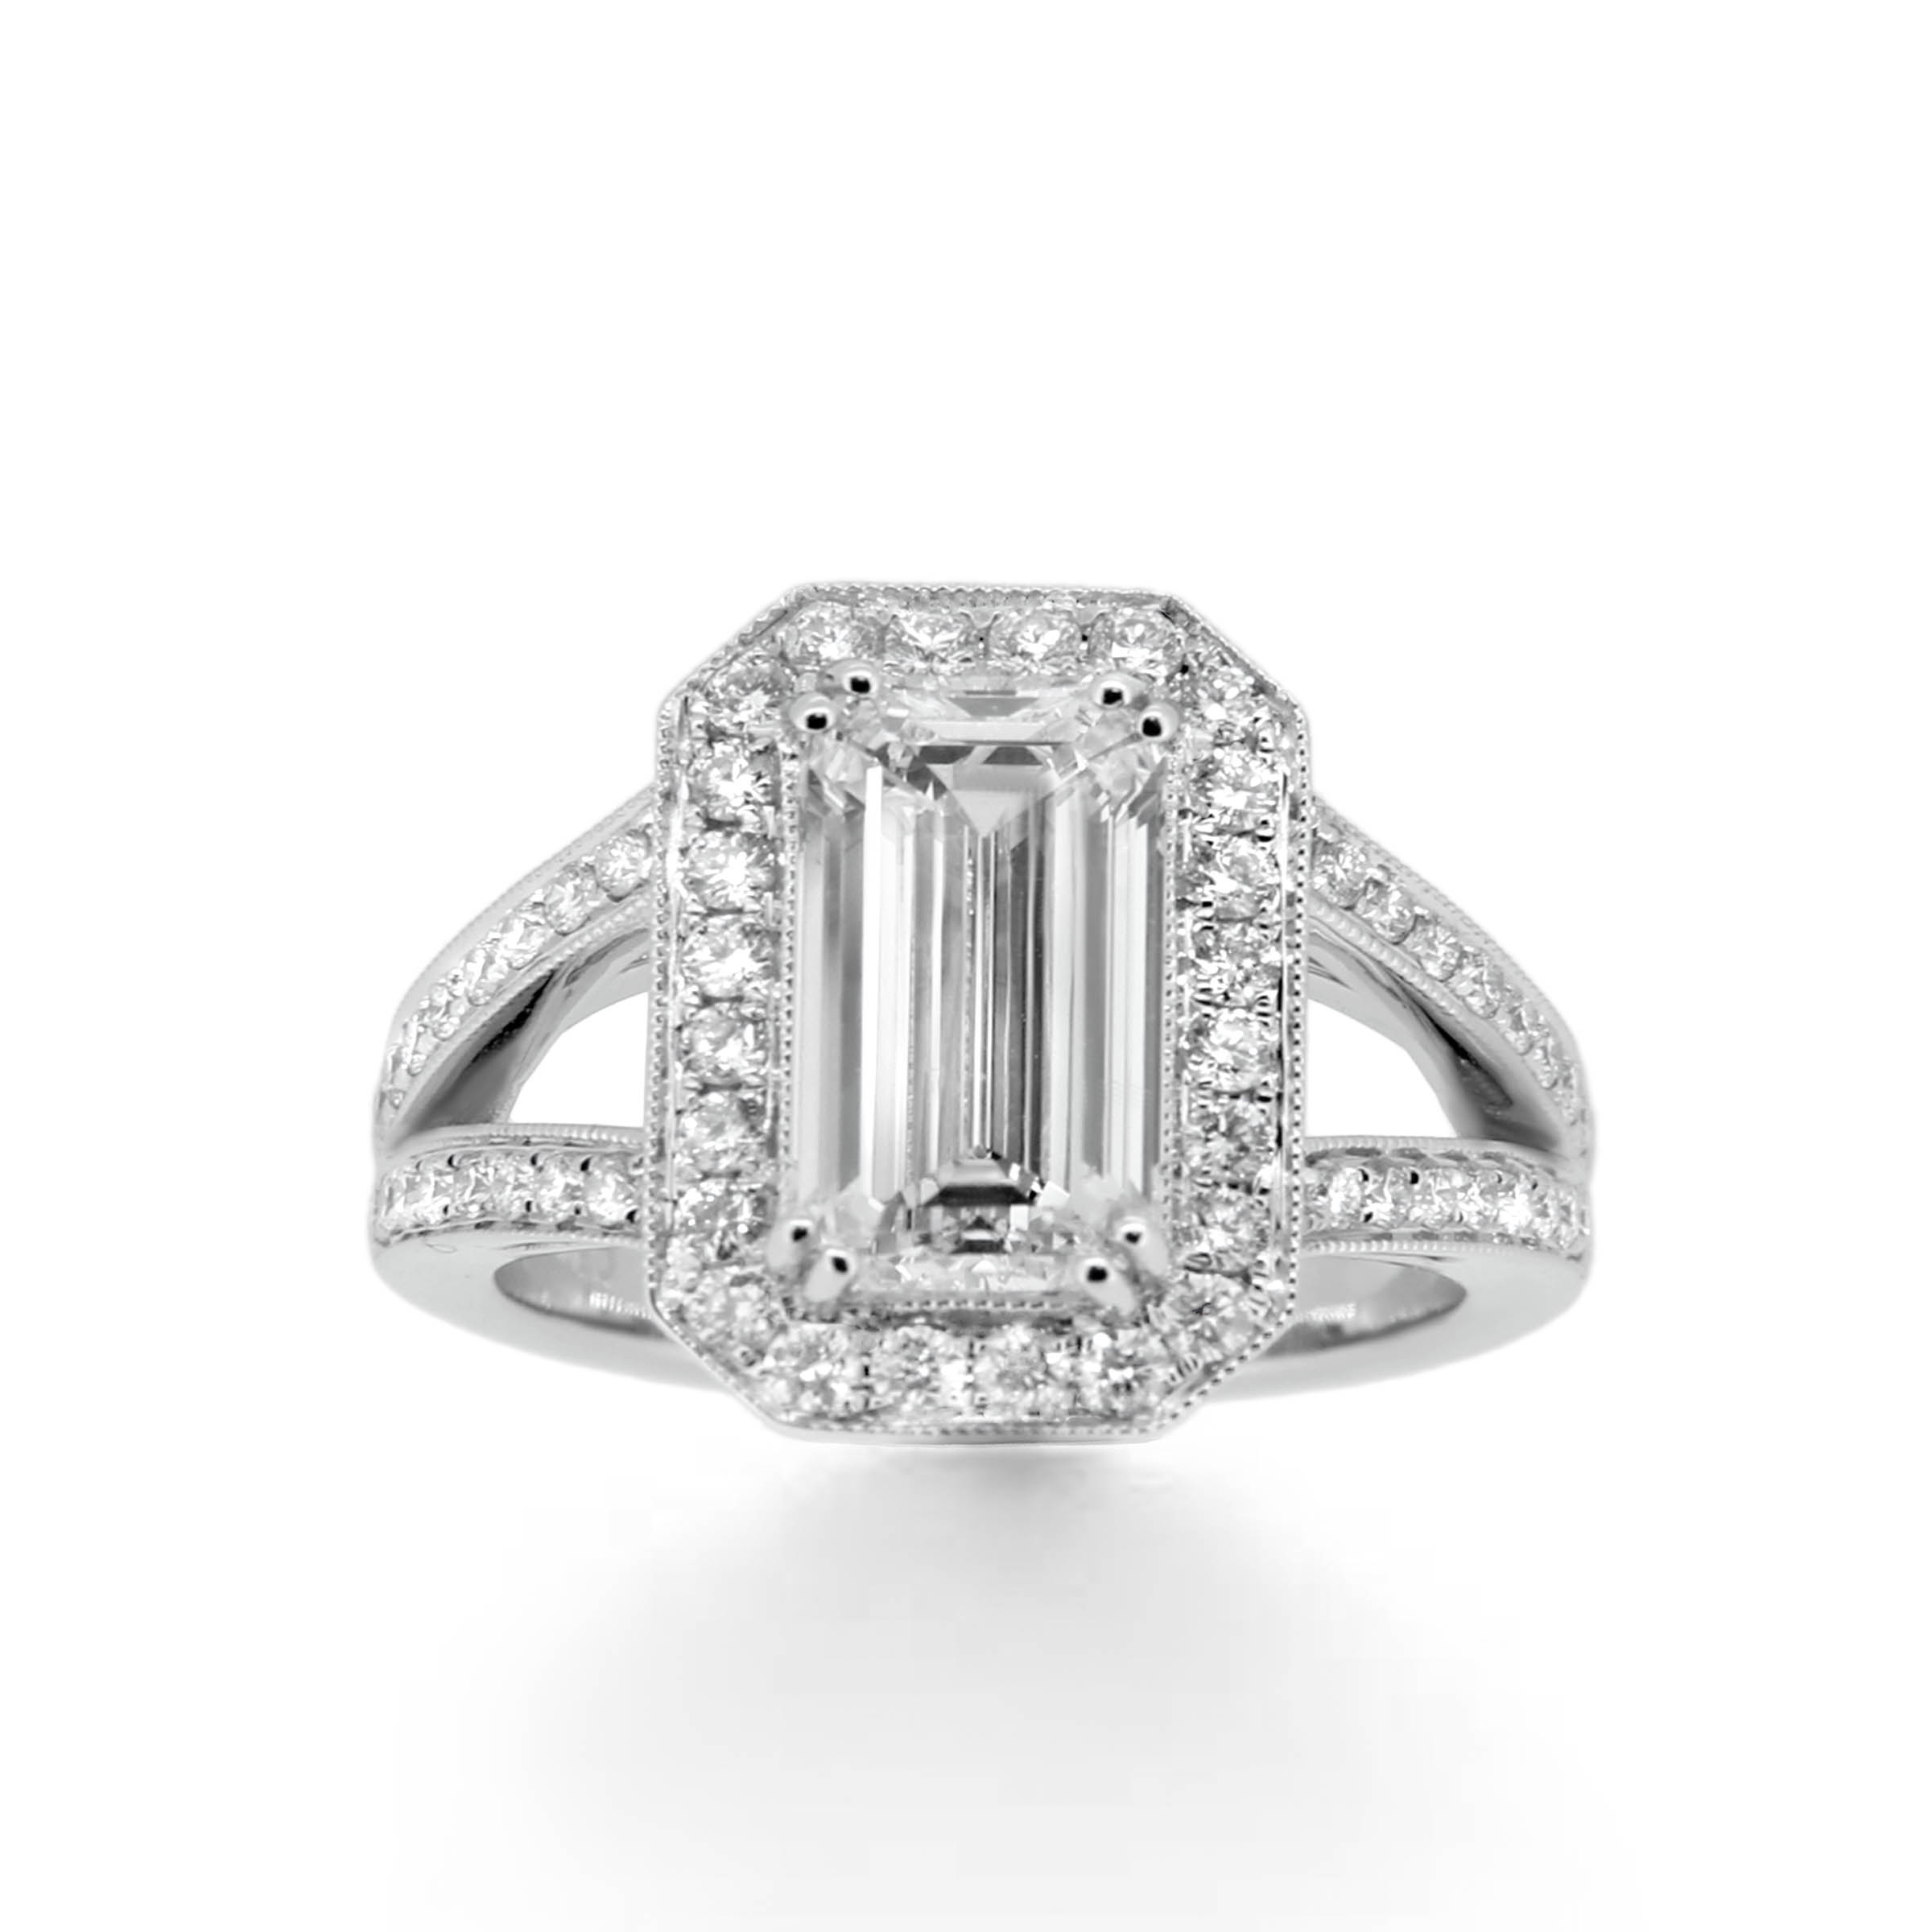 emerald cut diamond engagement ring- haywards of hong kong